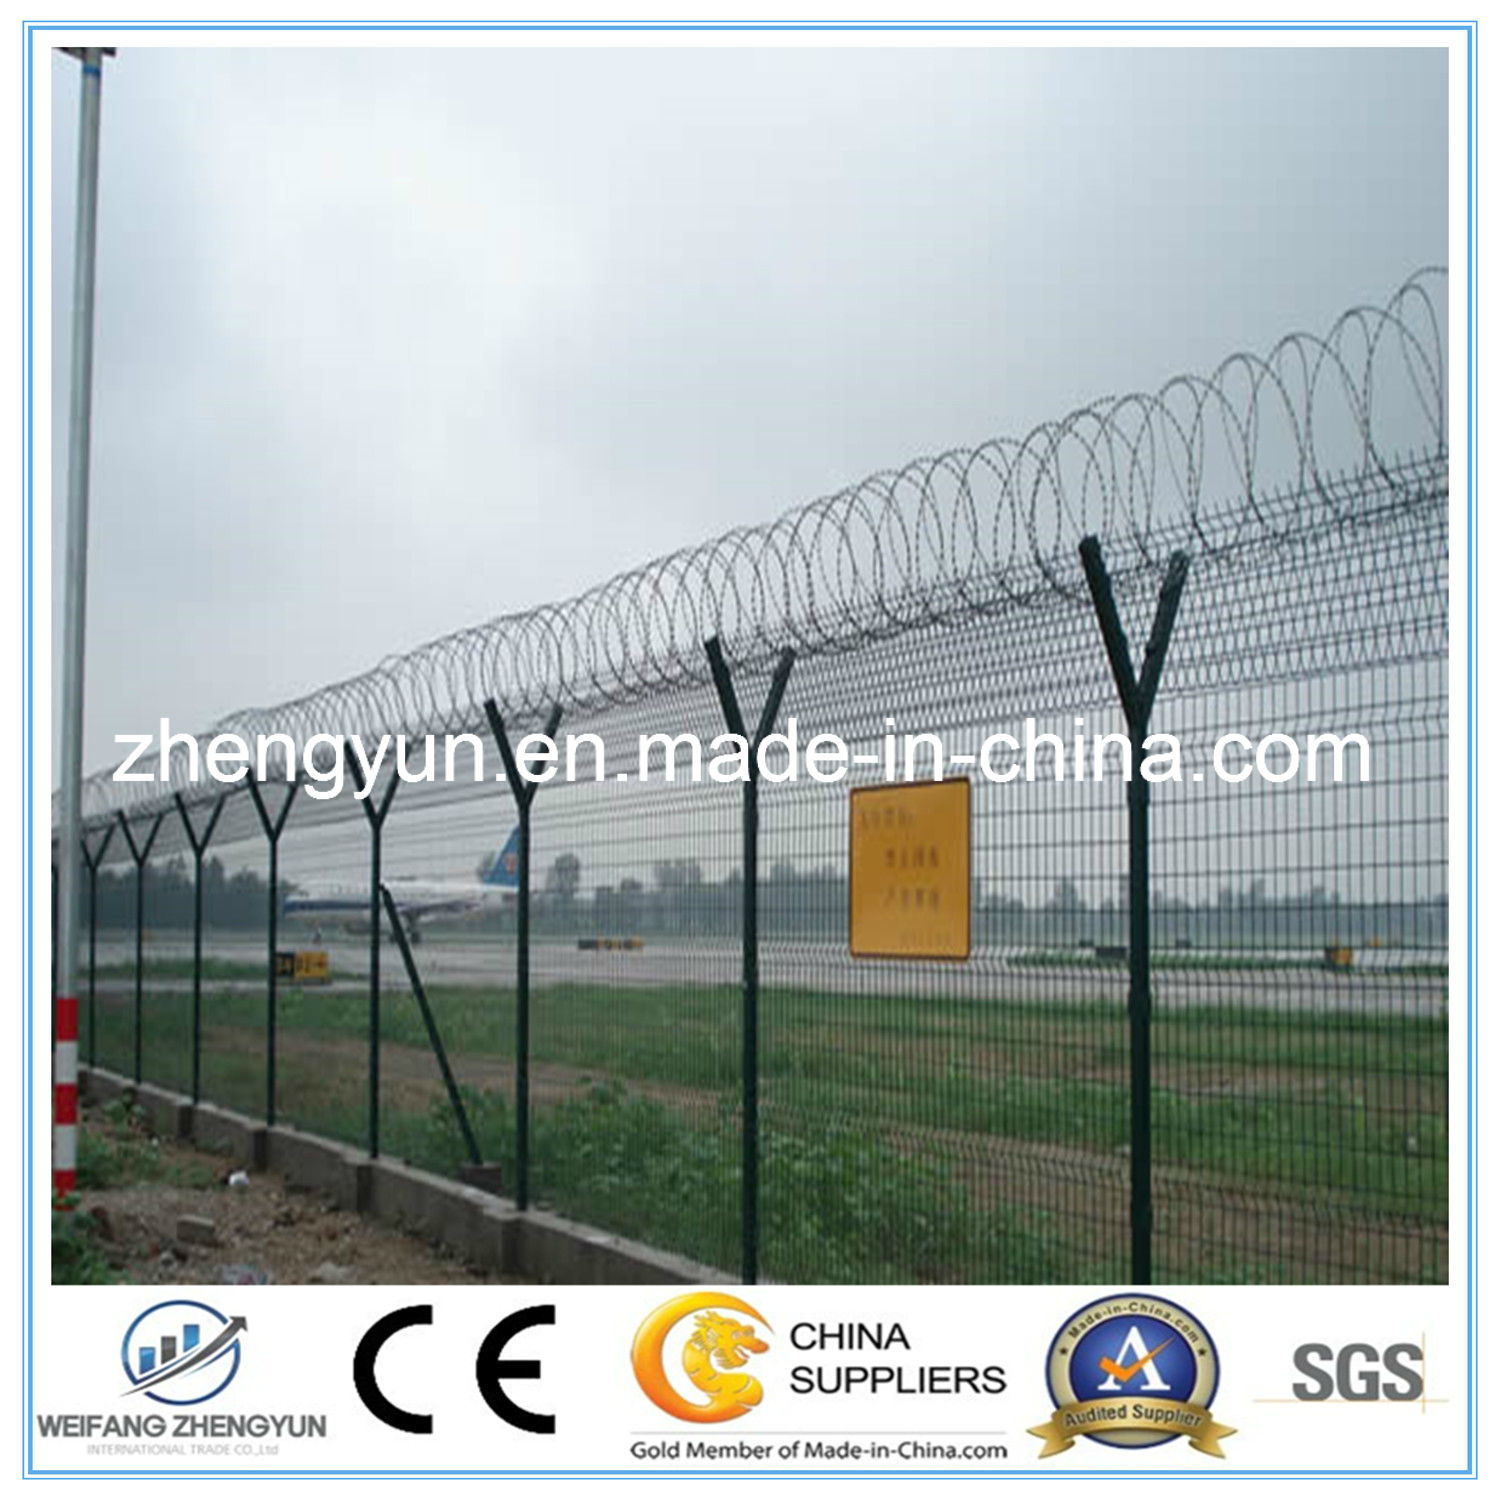 China Galvanized Iron Wire Mesh/Welded Wire Mesh Fence - China Fence ...